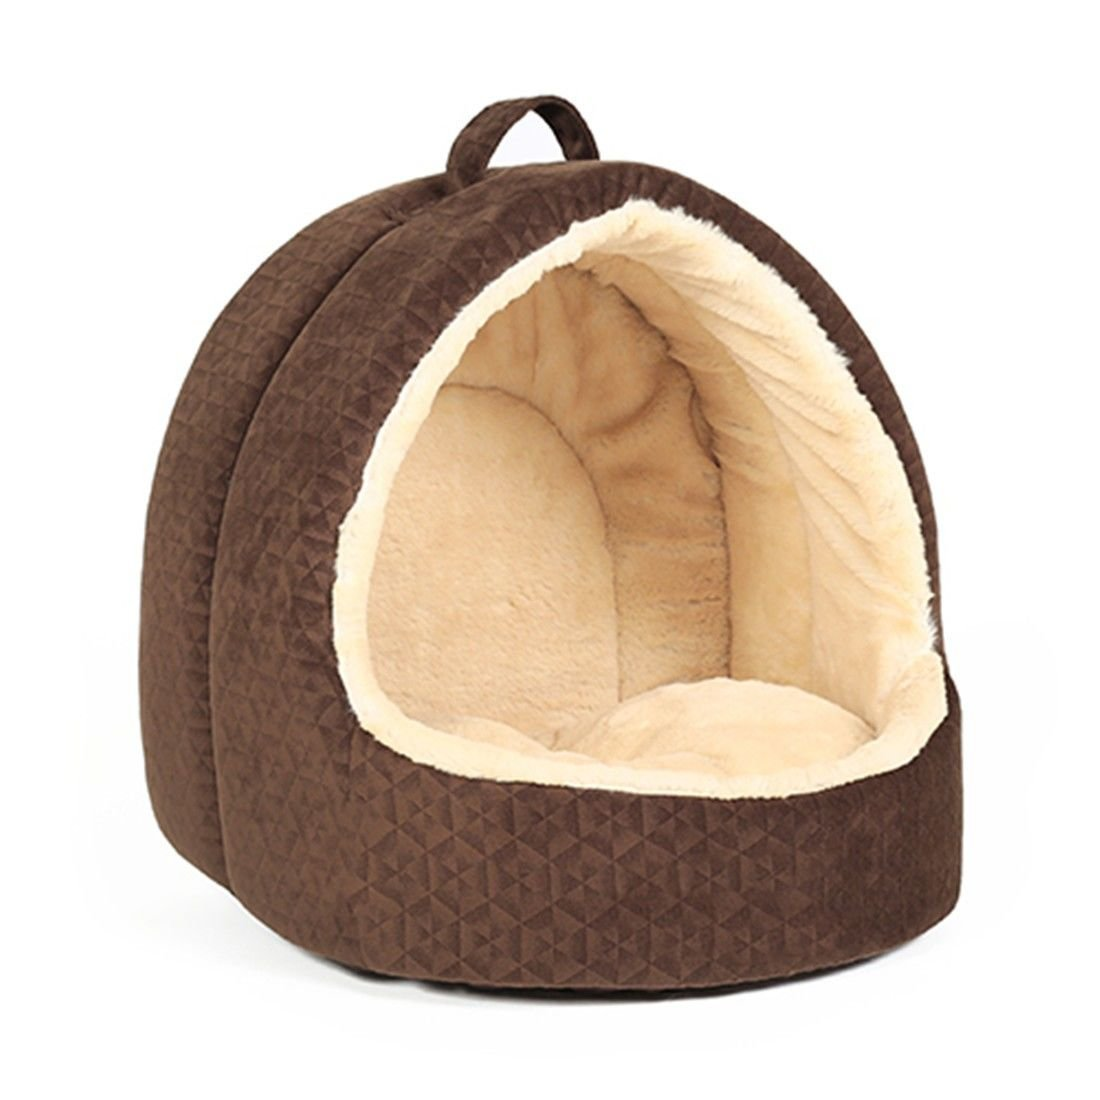 M 38X33X38CM STAZSX Kennel Teddy Bomei Small Dogs Dogs Yurt Dog Dogs Cat Supplies Maternity Cat Litter Four Seasons General, M 38X33X38CM